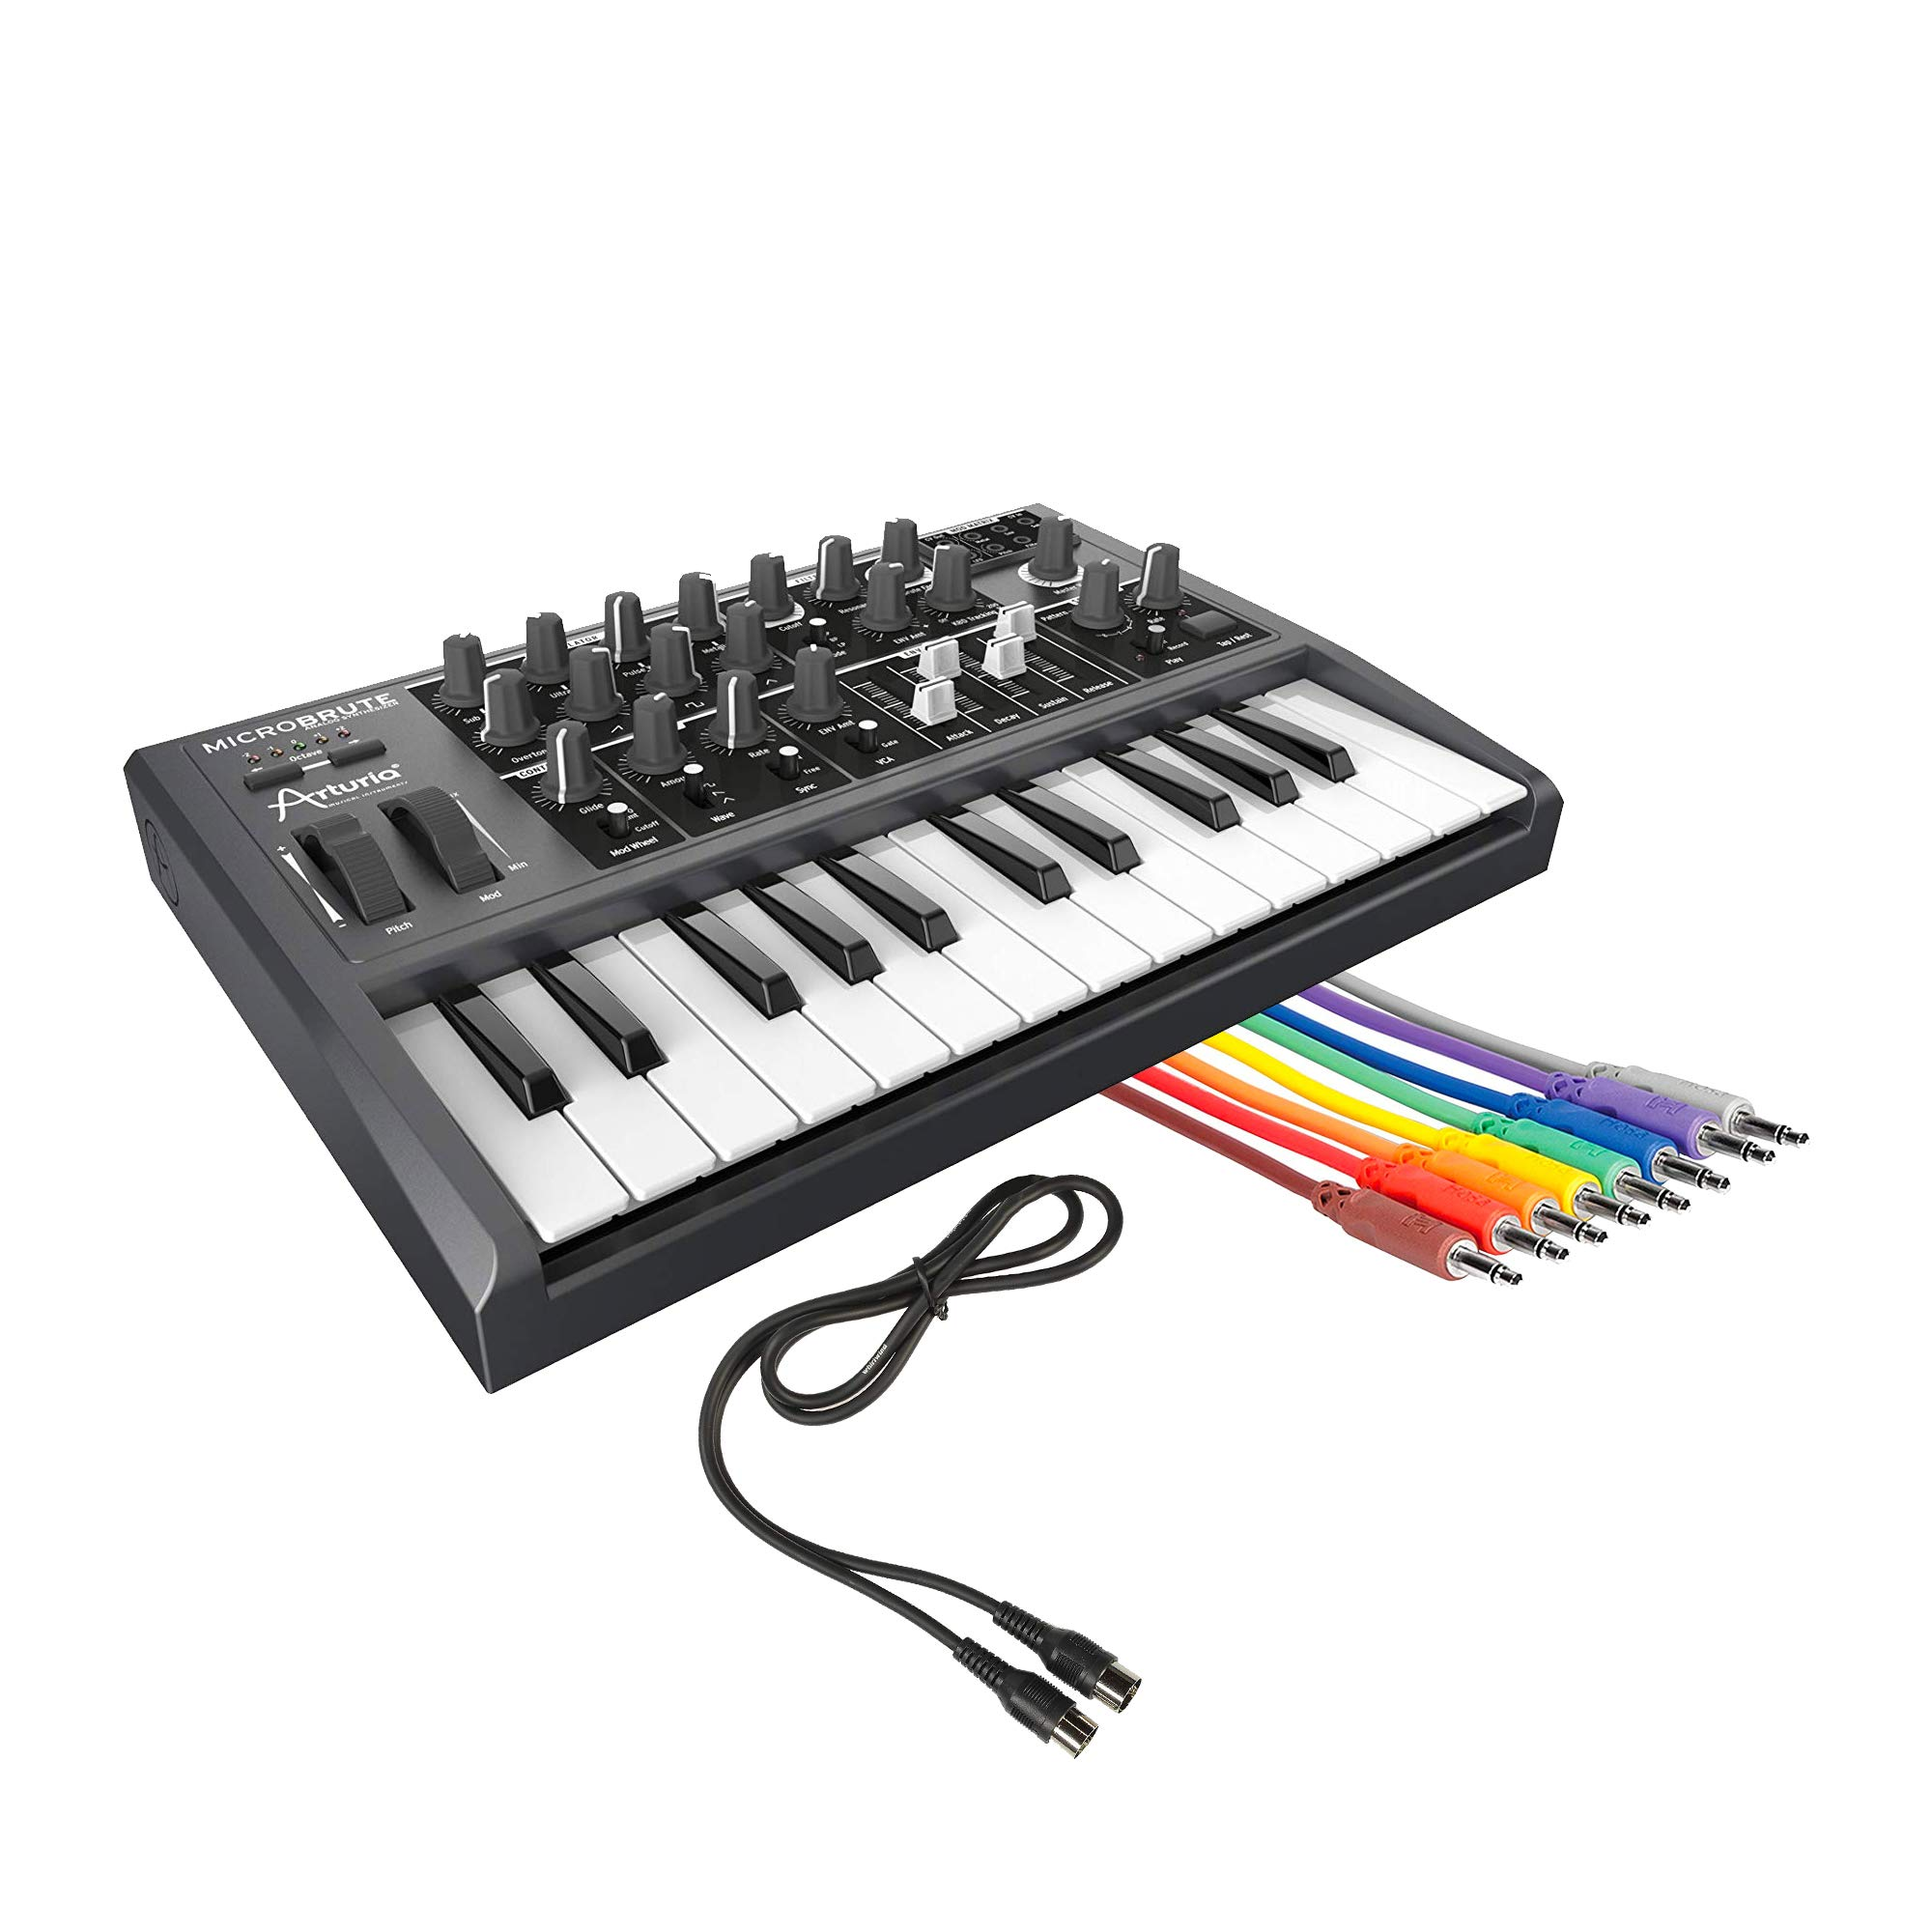 Arturia MicroBrute Analog Synthesizer w/Hosa 1.5' Unbalanced Patch Cable 3.5mm and 3' Midi Cable